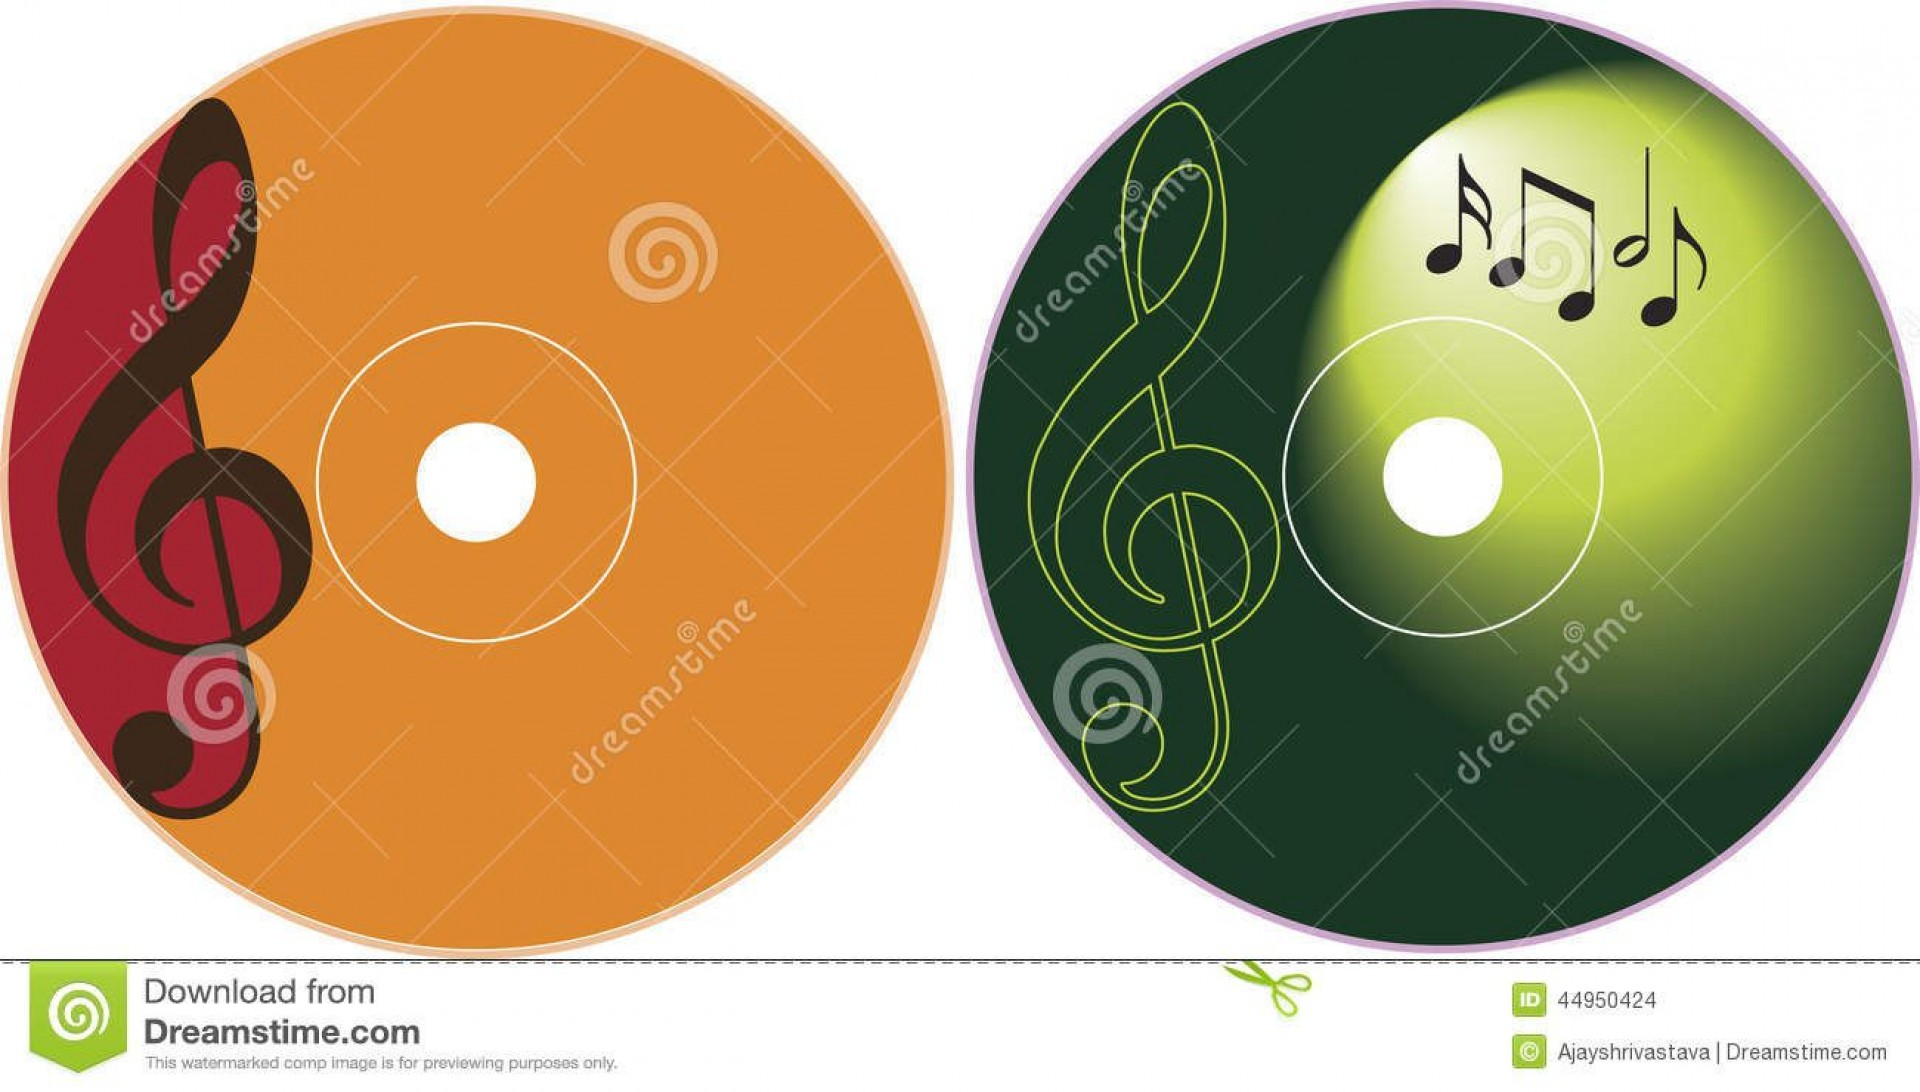 007 Outstanding Cd Label Design Template Free Download Picture  Cover Psd1920